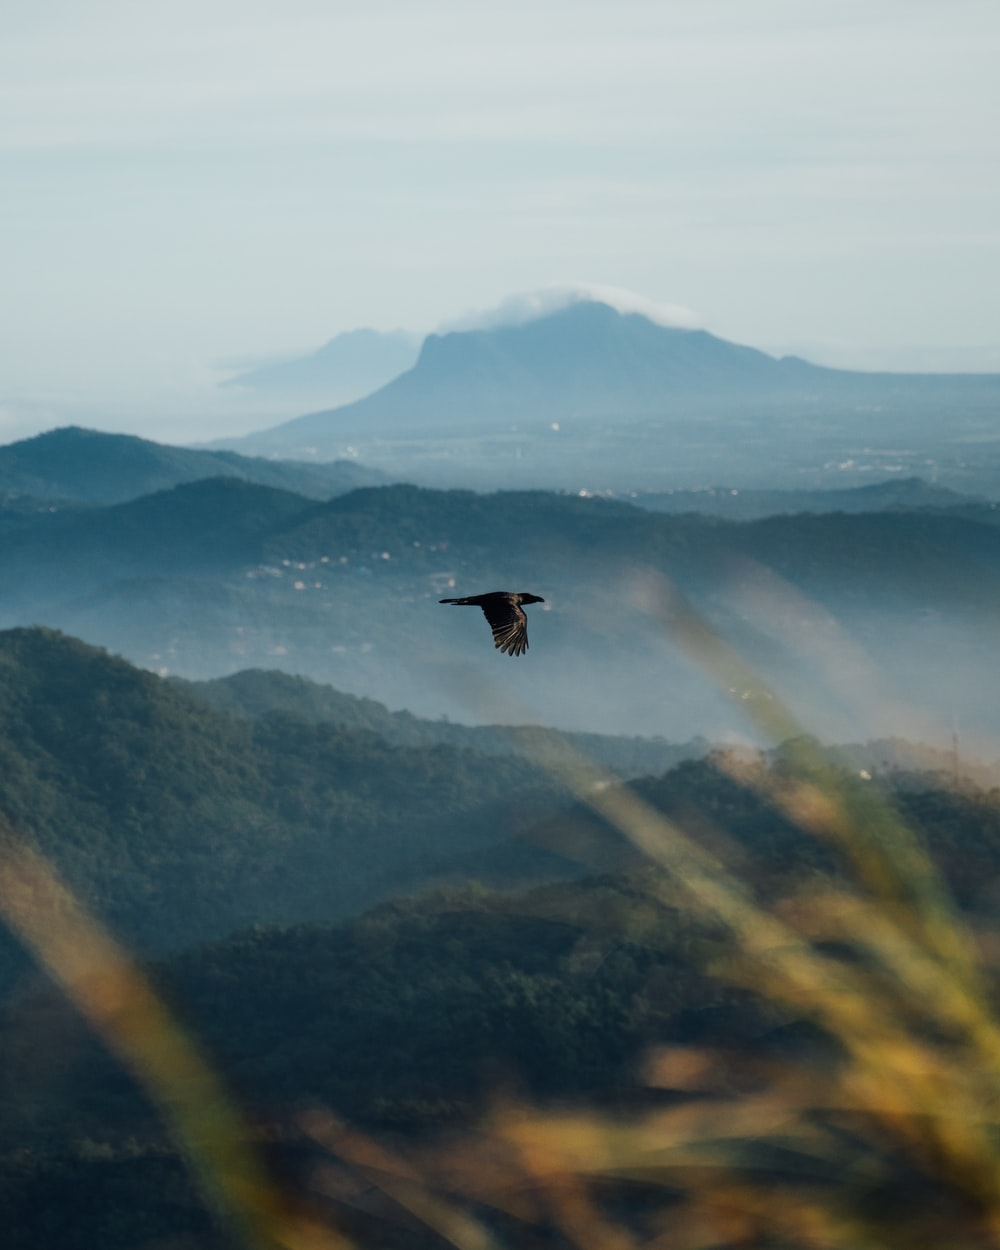 black bird flying over the mountain during daytime